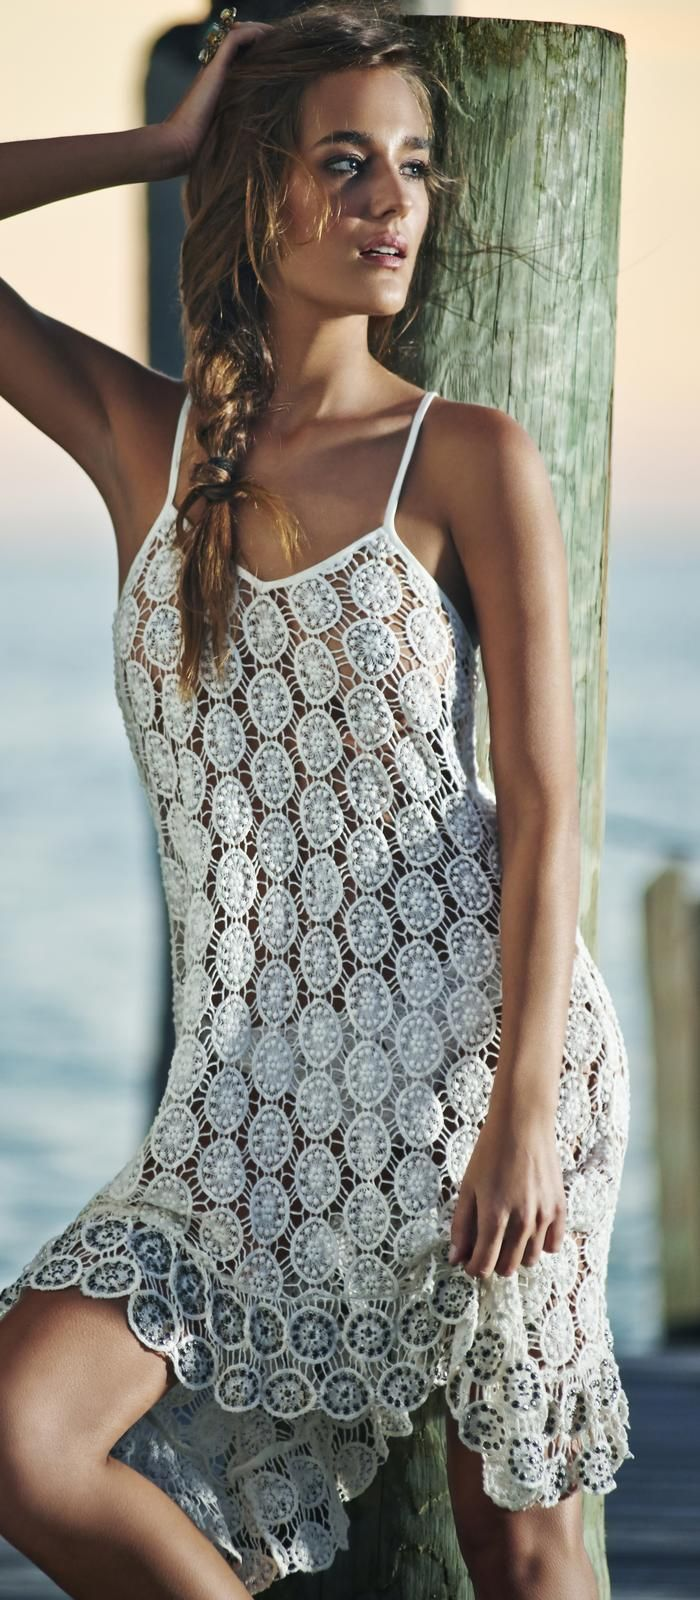 #PilyQ 2015 Water Lilly Alyssa Beaded #Dress WAT-484D #southbeachswimsuits